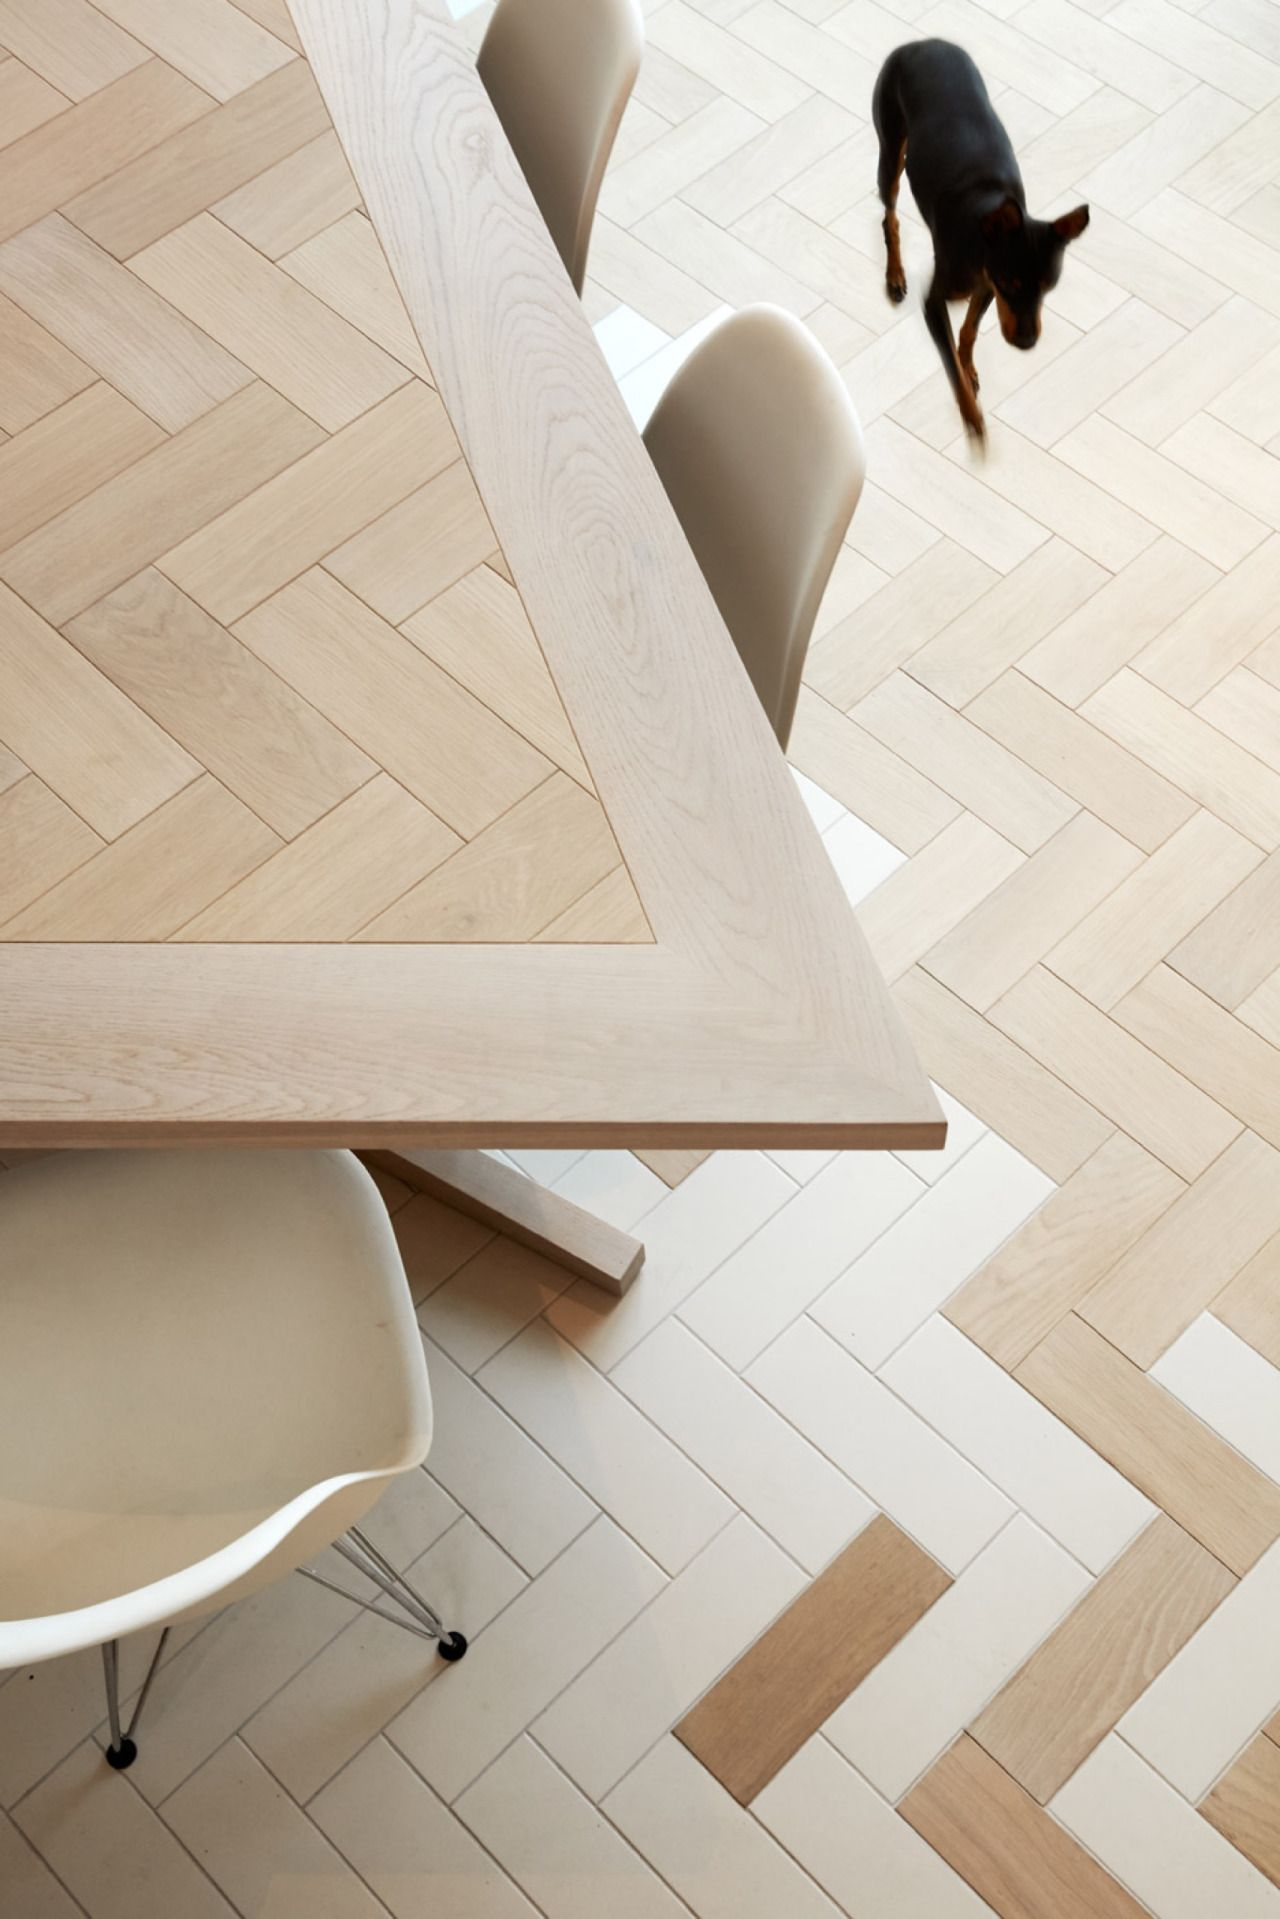 Log In Parquetry Floor Interior Tiles Dining Table